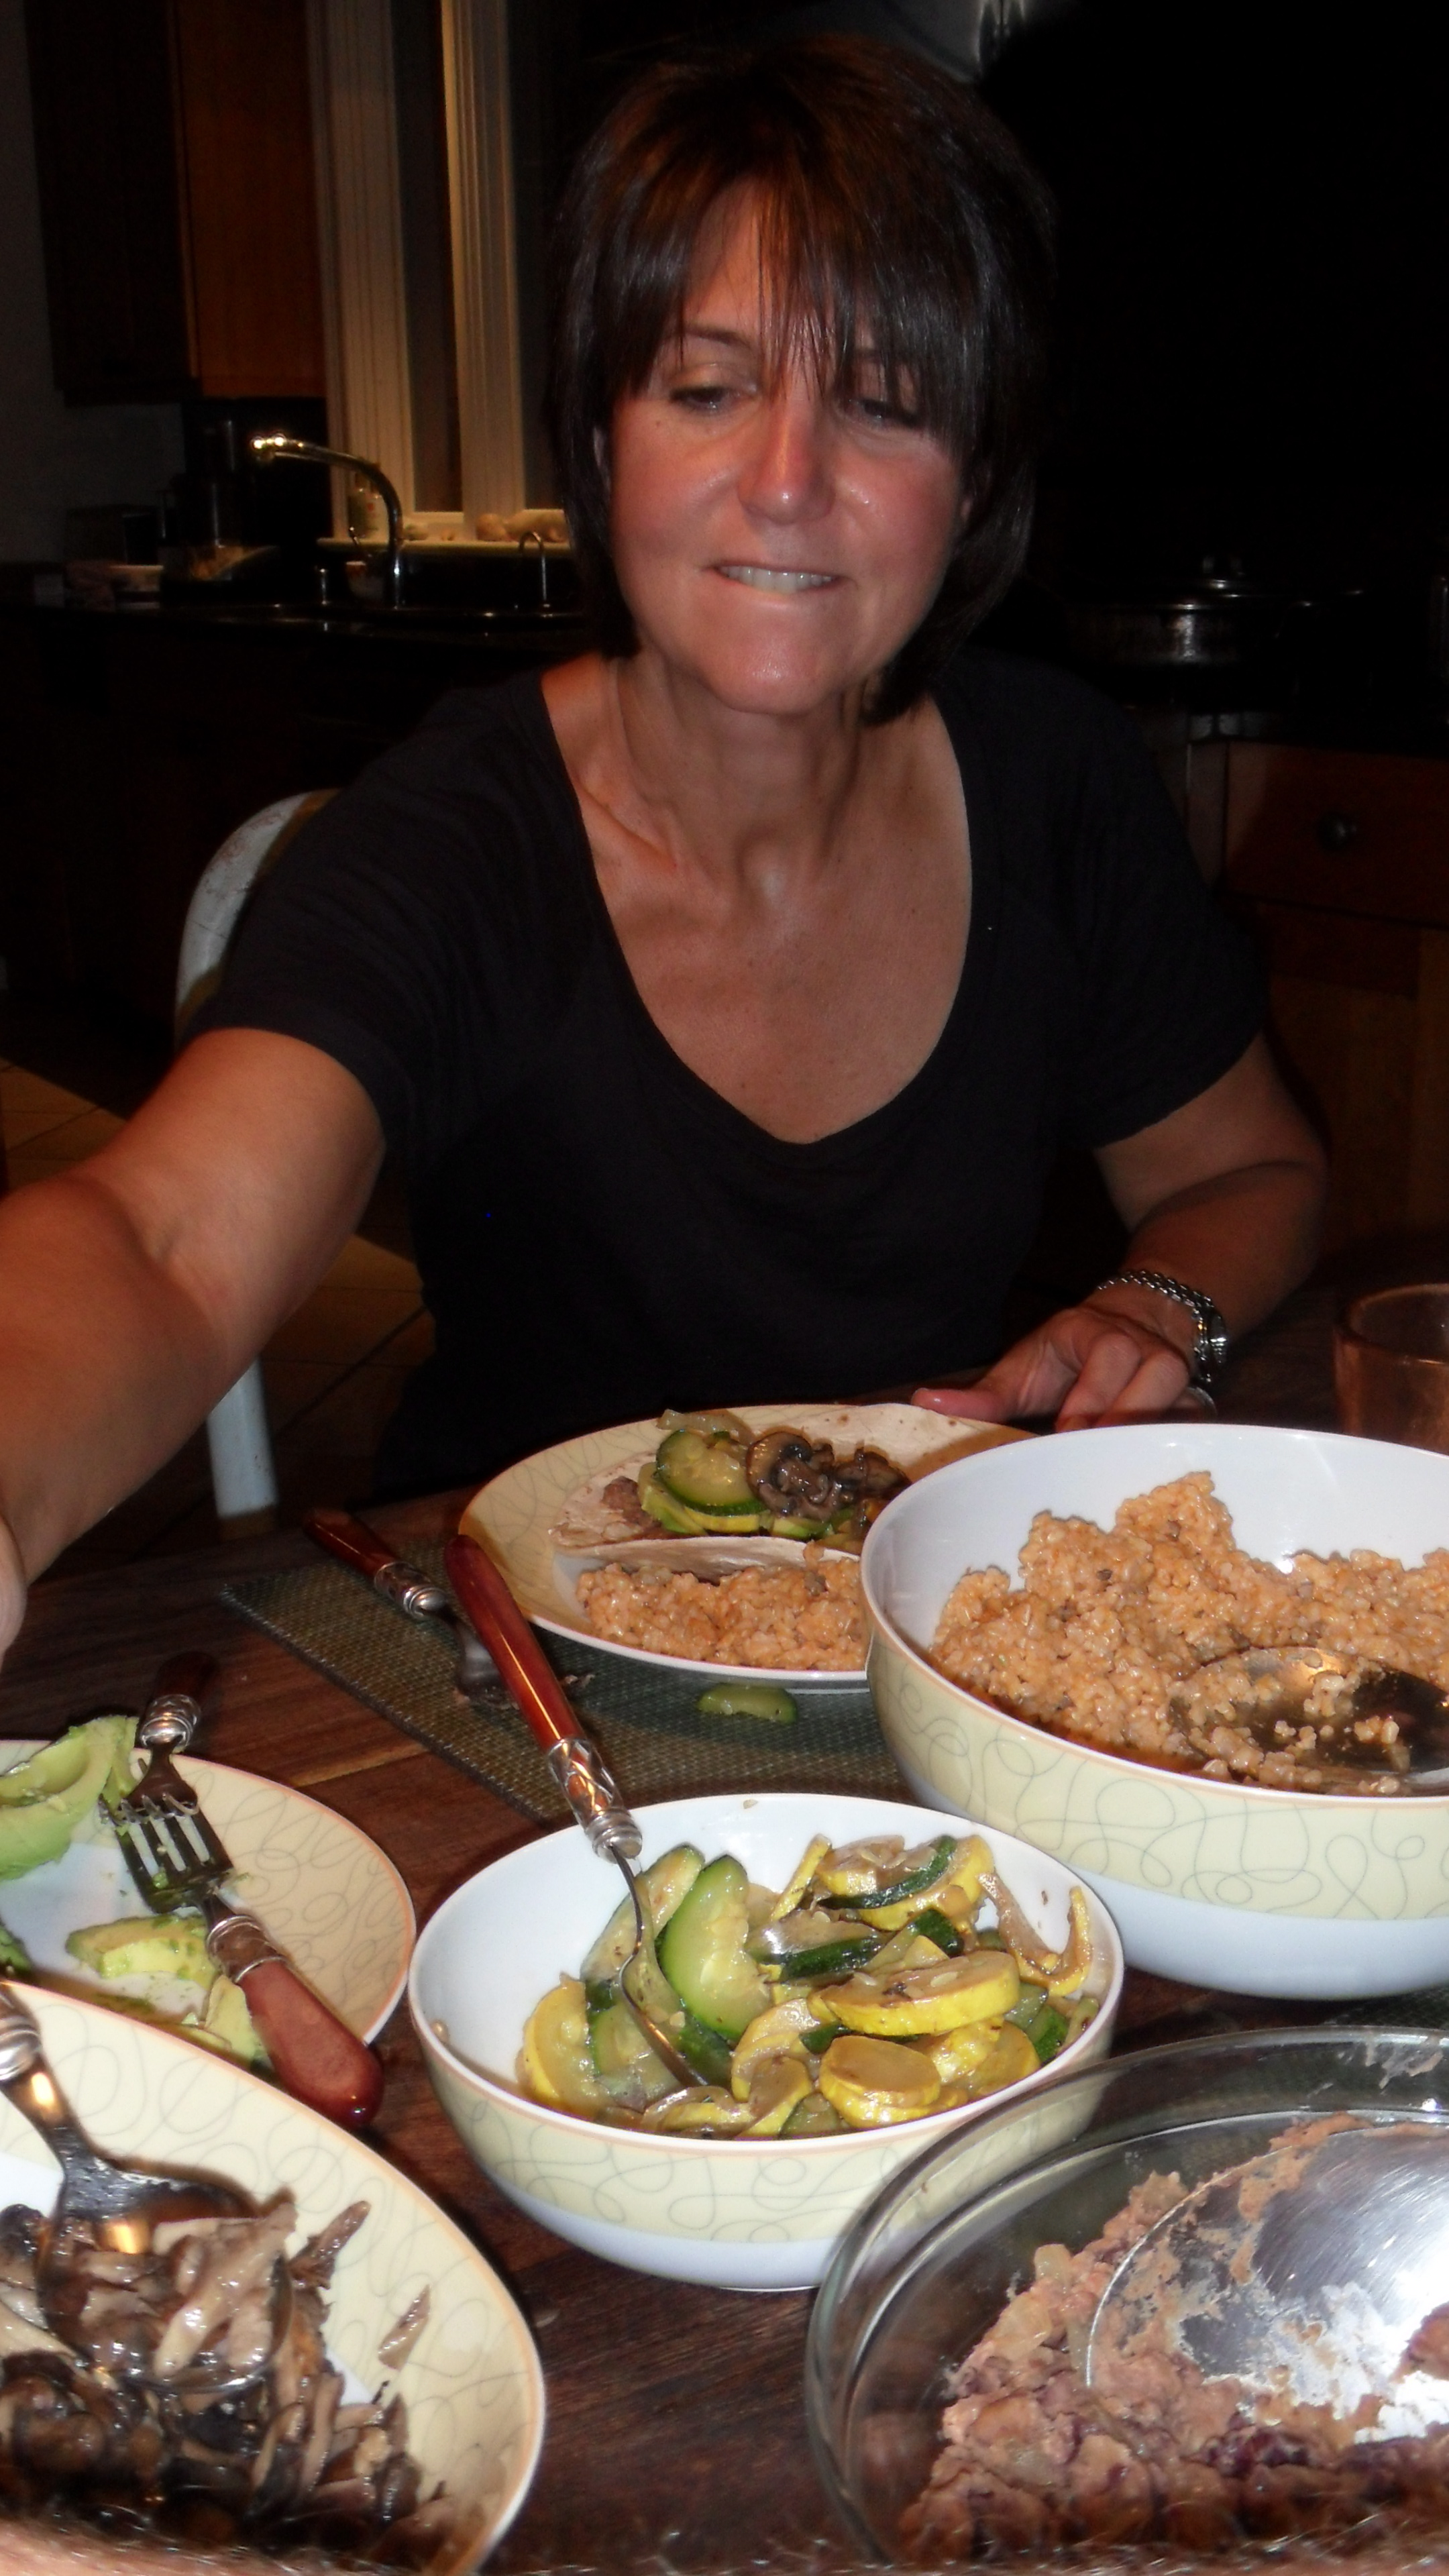 Mom totally dug in and was impressed with vegan taco night!